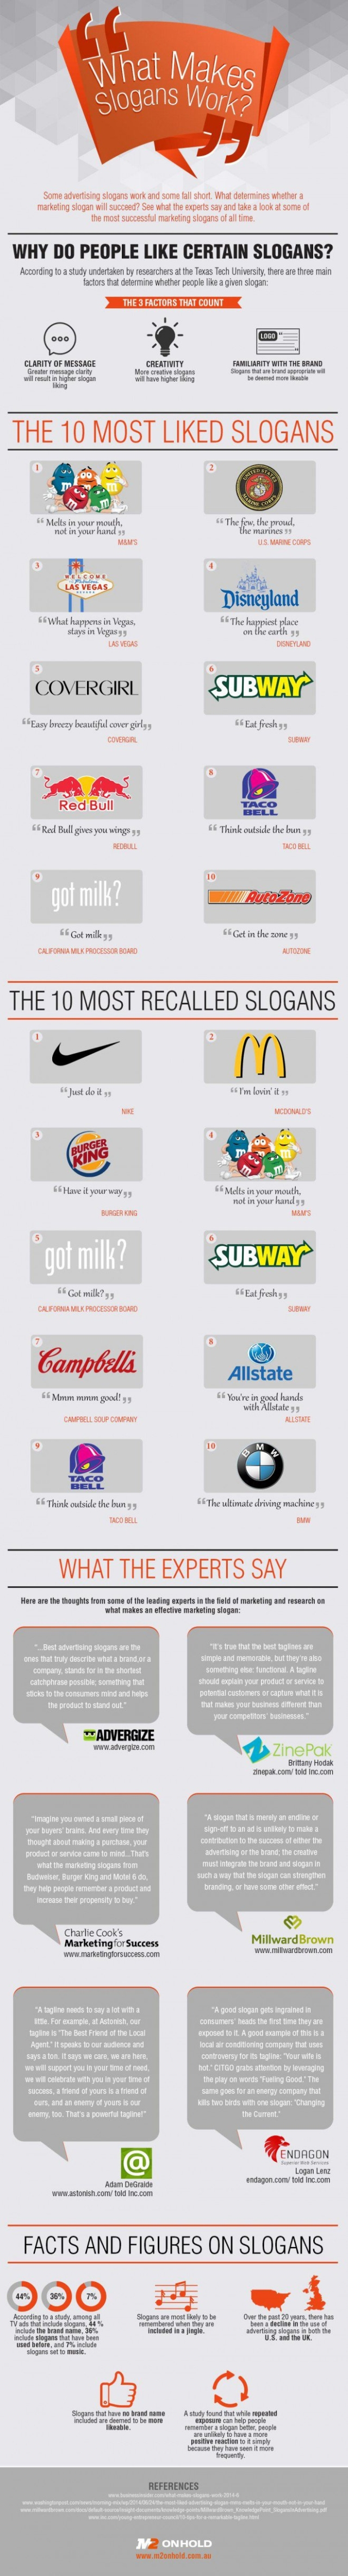 Branding Tips How to Write a Memorable Tagline or Slogan